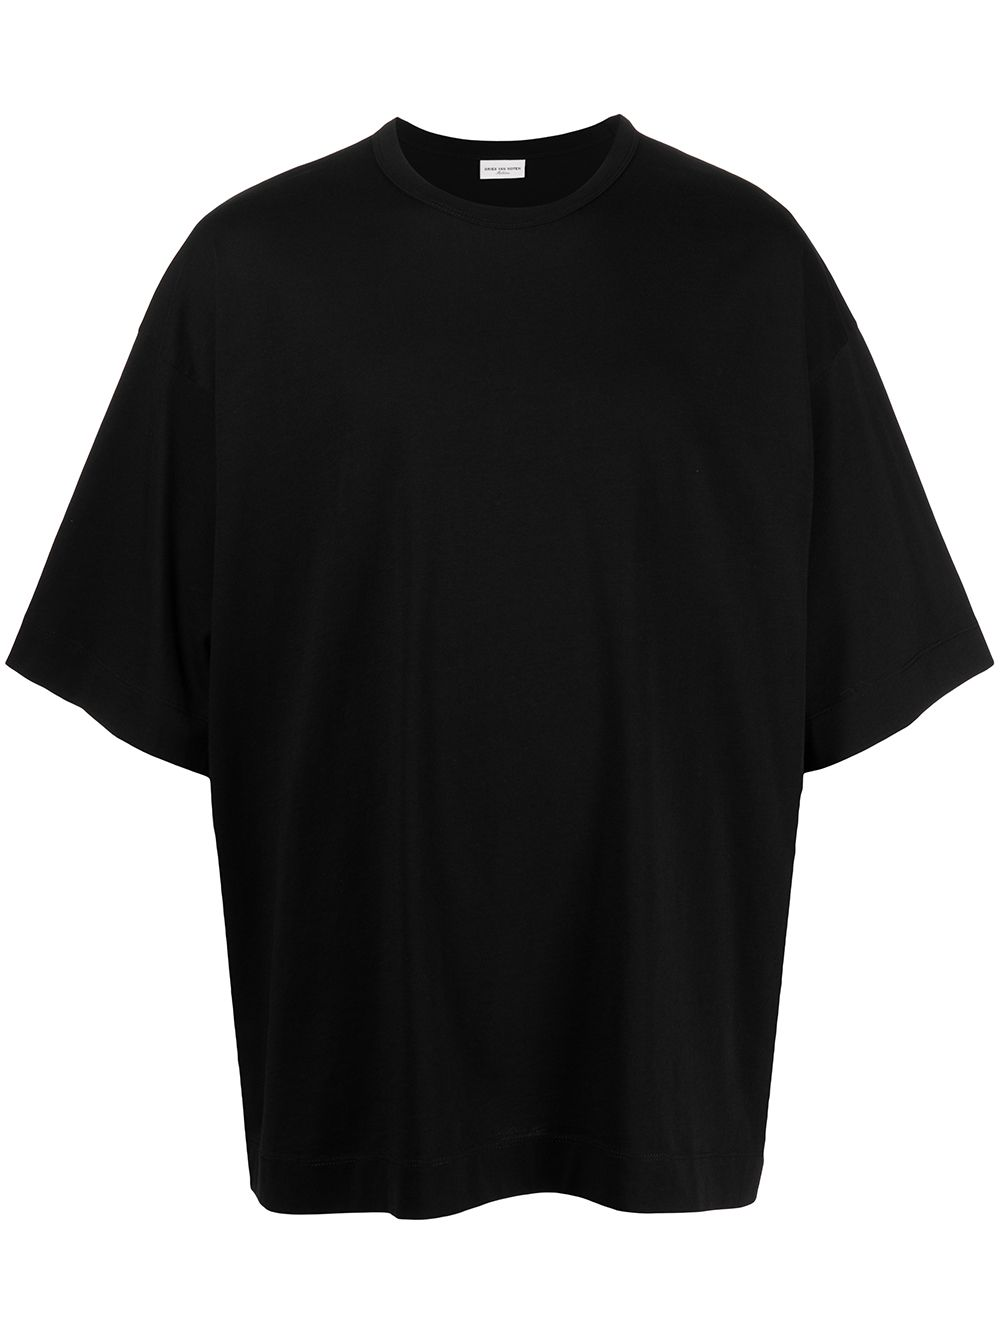 DRIES VAN NOTEN | T-shirts | HEKY2600BLACK